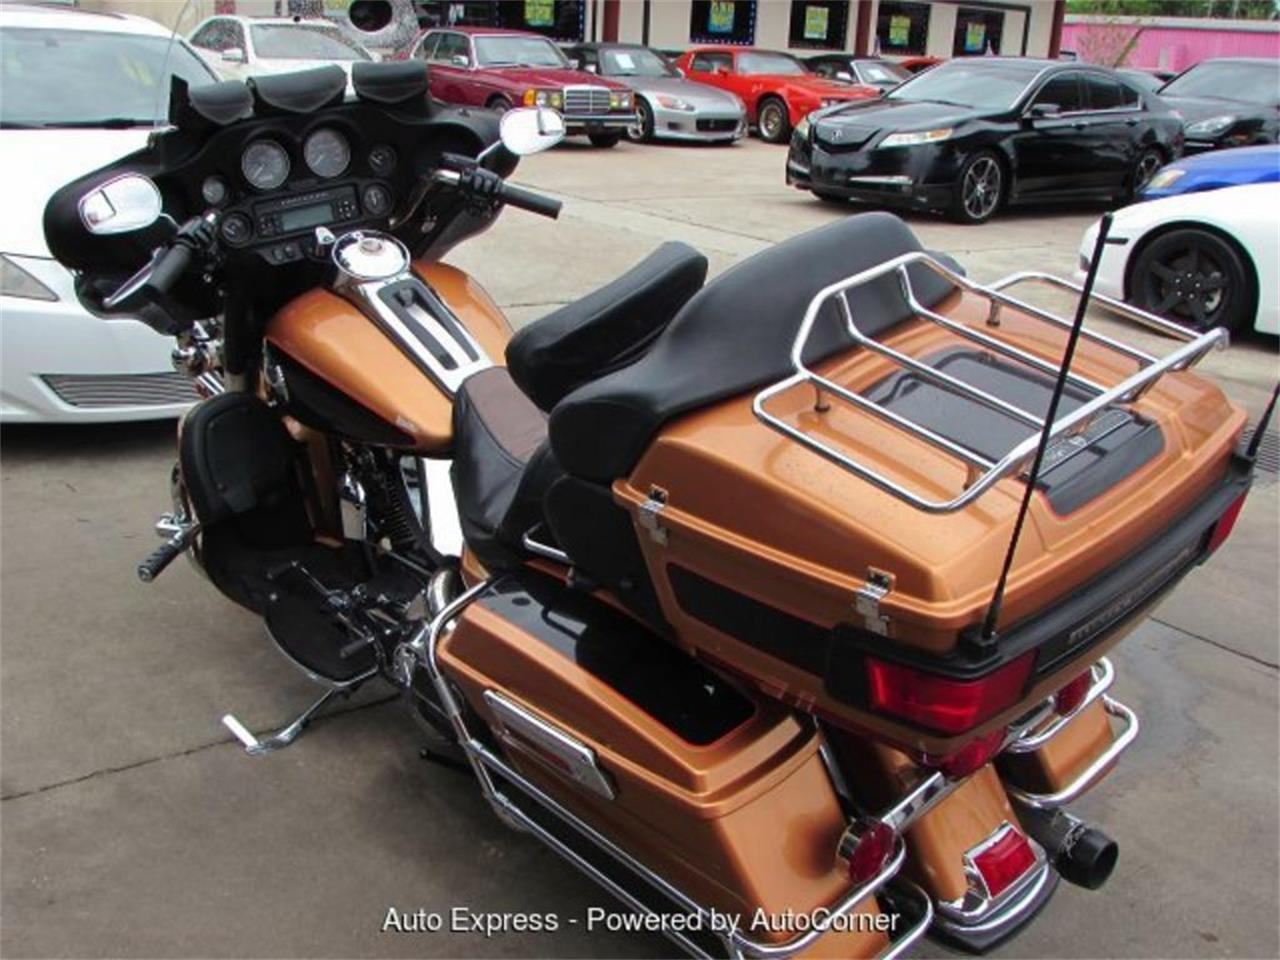 Large Picture of 2008 Harley-Davidson Electra Glide Auction Vehicle Offered by Auto Express - Q598